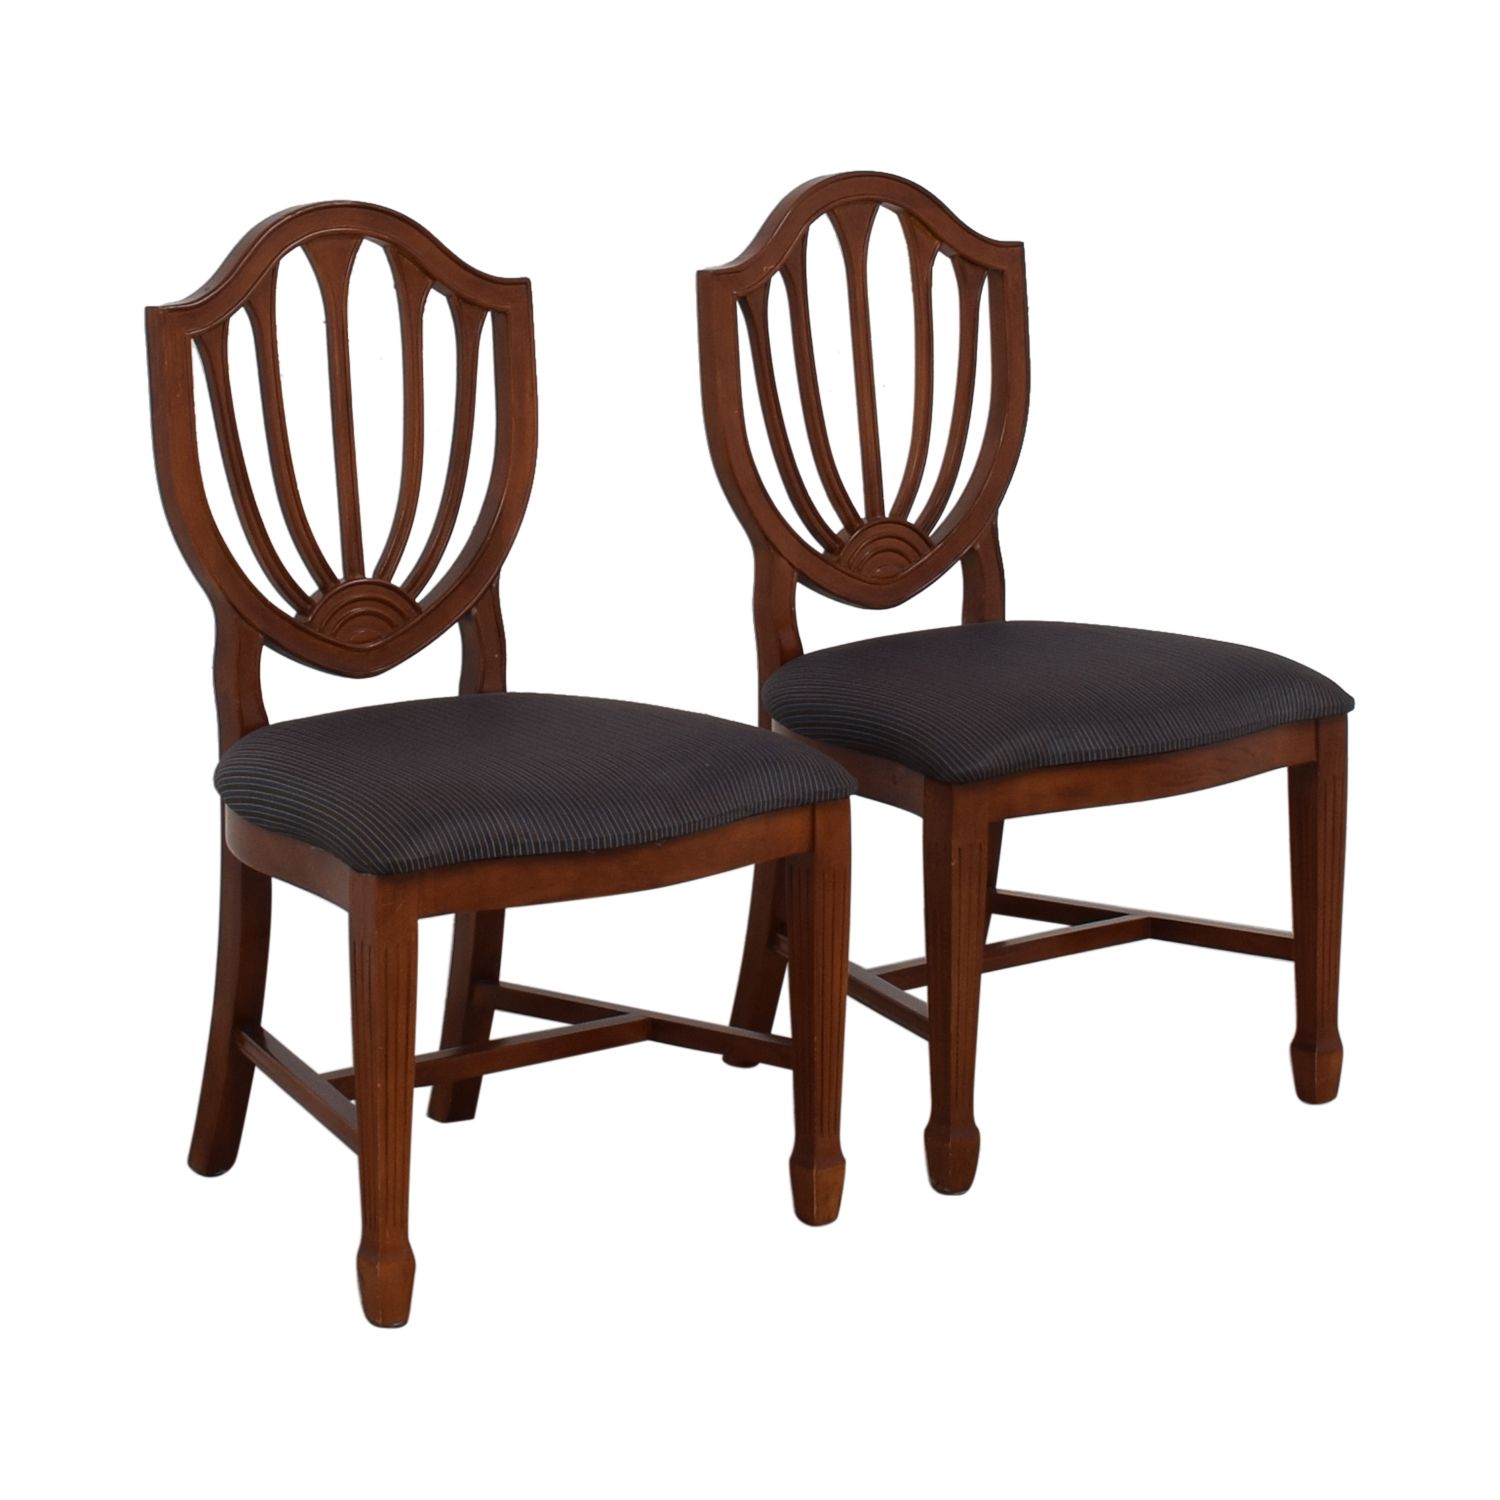 Awe Inspiring 86 Off Blue Striped Upholstered Cherry Wood Accent Chairs Chairs Ibusinesslaw Wood Chair Design Ideas Ibusinesslaworg